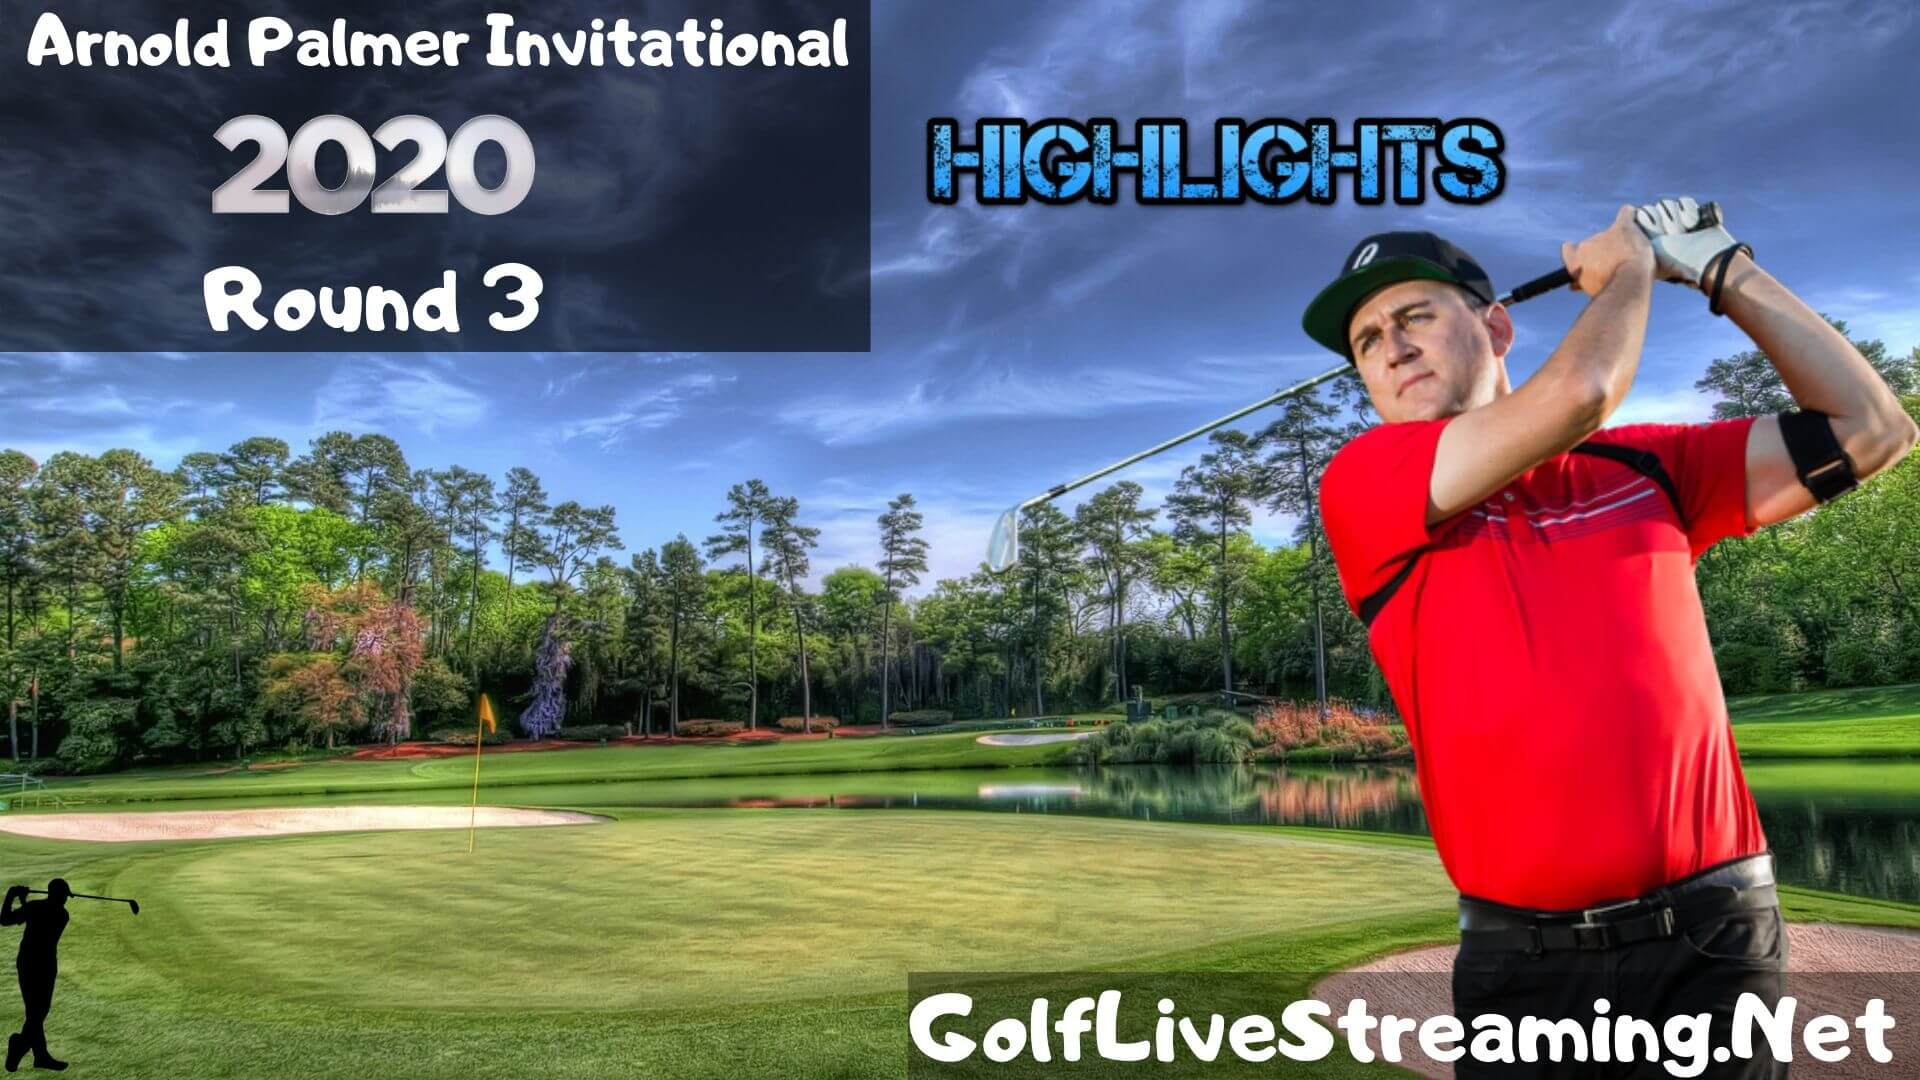 Arnold Palmer Invitational Rd 3 Highlights 2020